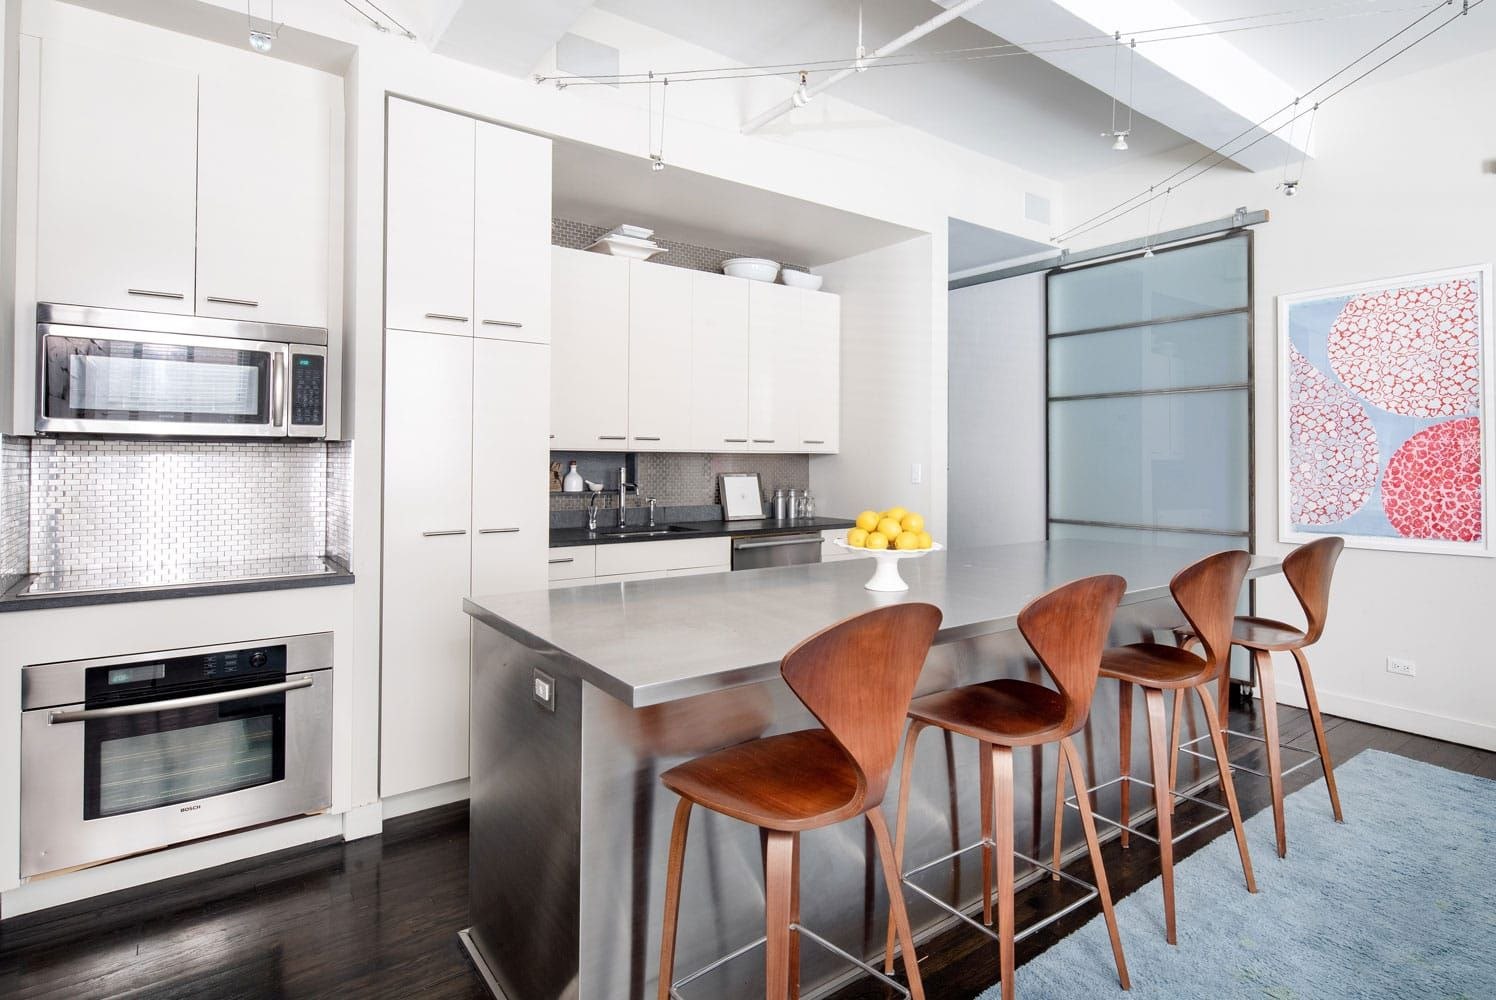 Get inspired by how much functionality and style New York